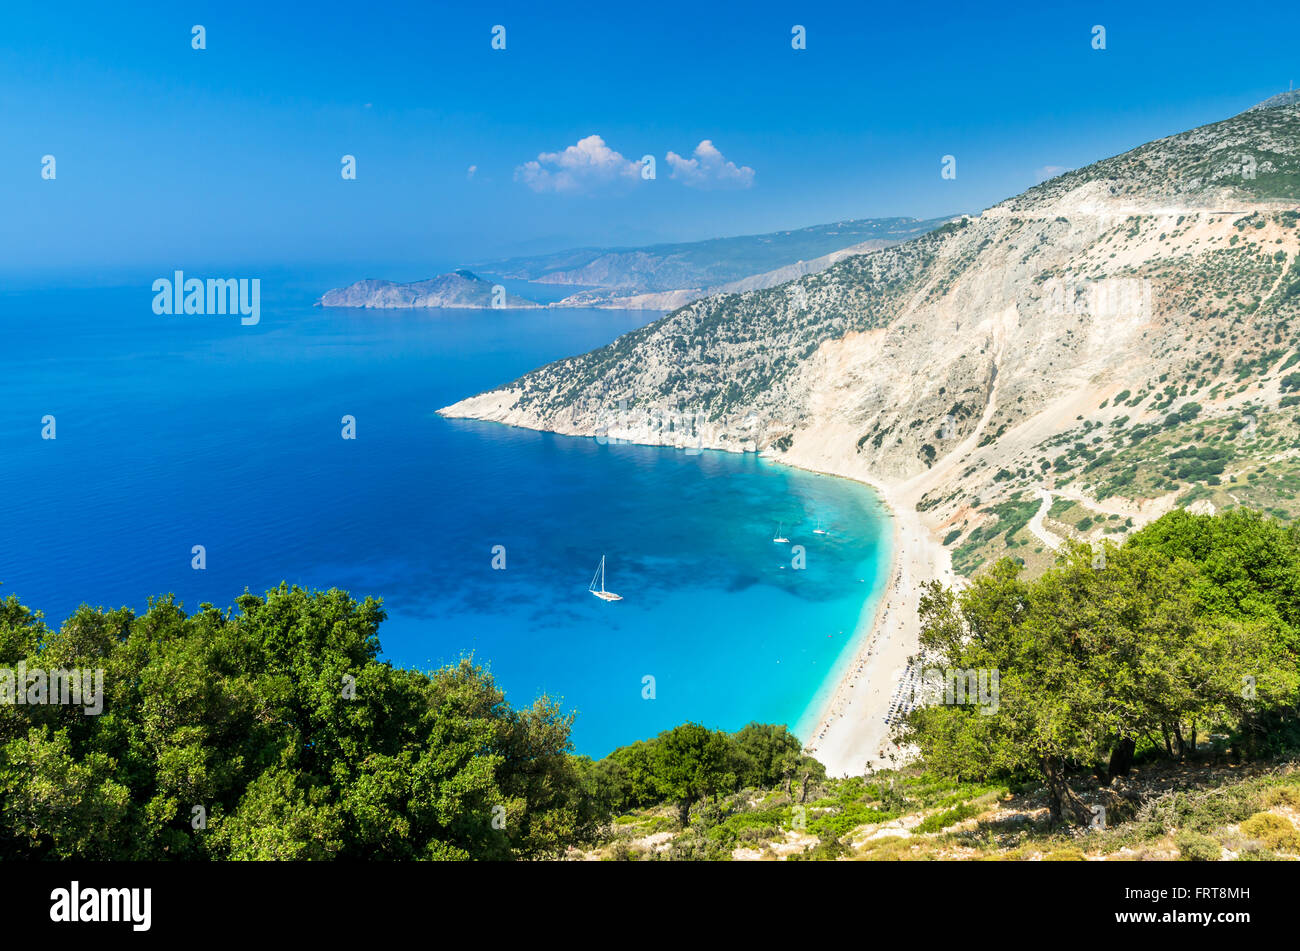 Myrtos beach, Kefalonia island, Greece. Beautiful view of Mirtos bay and beach on Kefalonia island - Stock Image